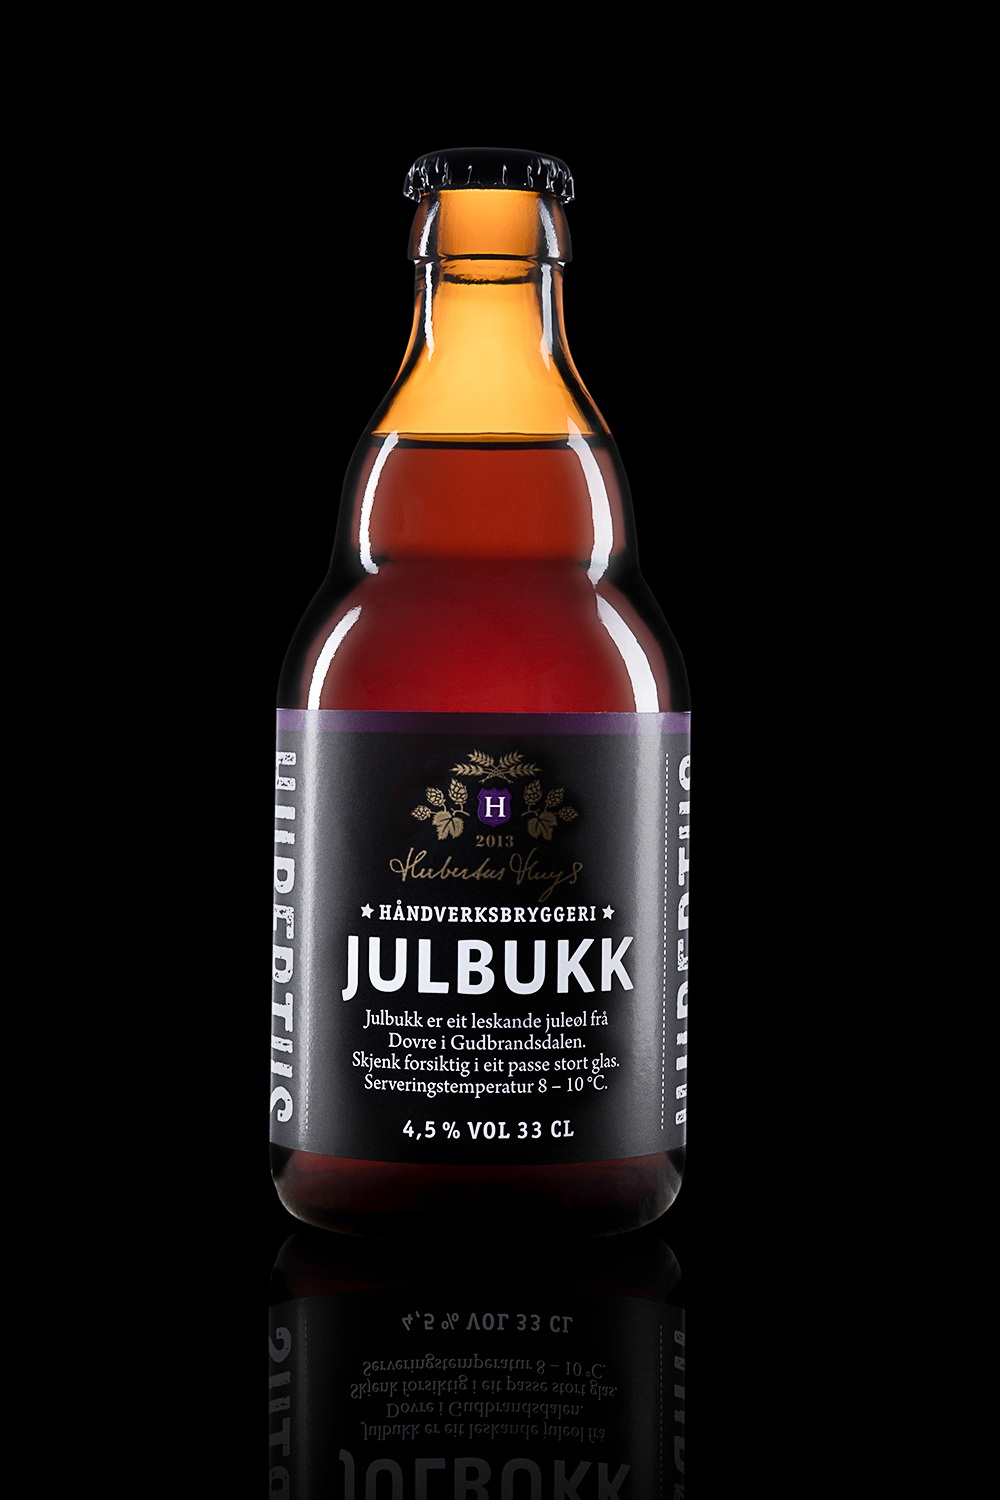 Julbukk - Type: Christmas beer.Color: Red/brown.Aroma: Fruity, coffee and chocolate.Flavor: Chocolate, coffee, malt extract and oat biscuits.Contents: Alcohol 4,5%.Food pairing: Christmas food and Christmas desserts.